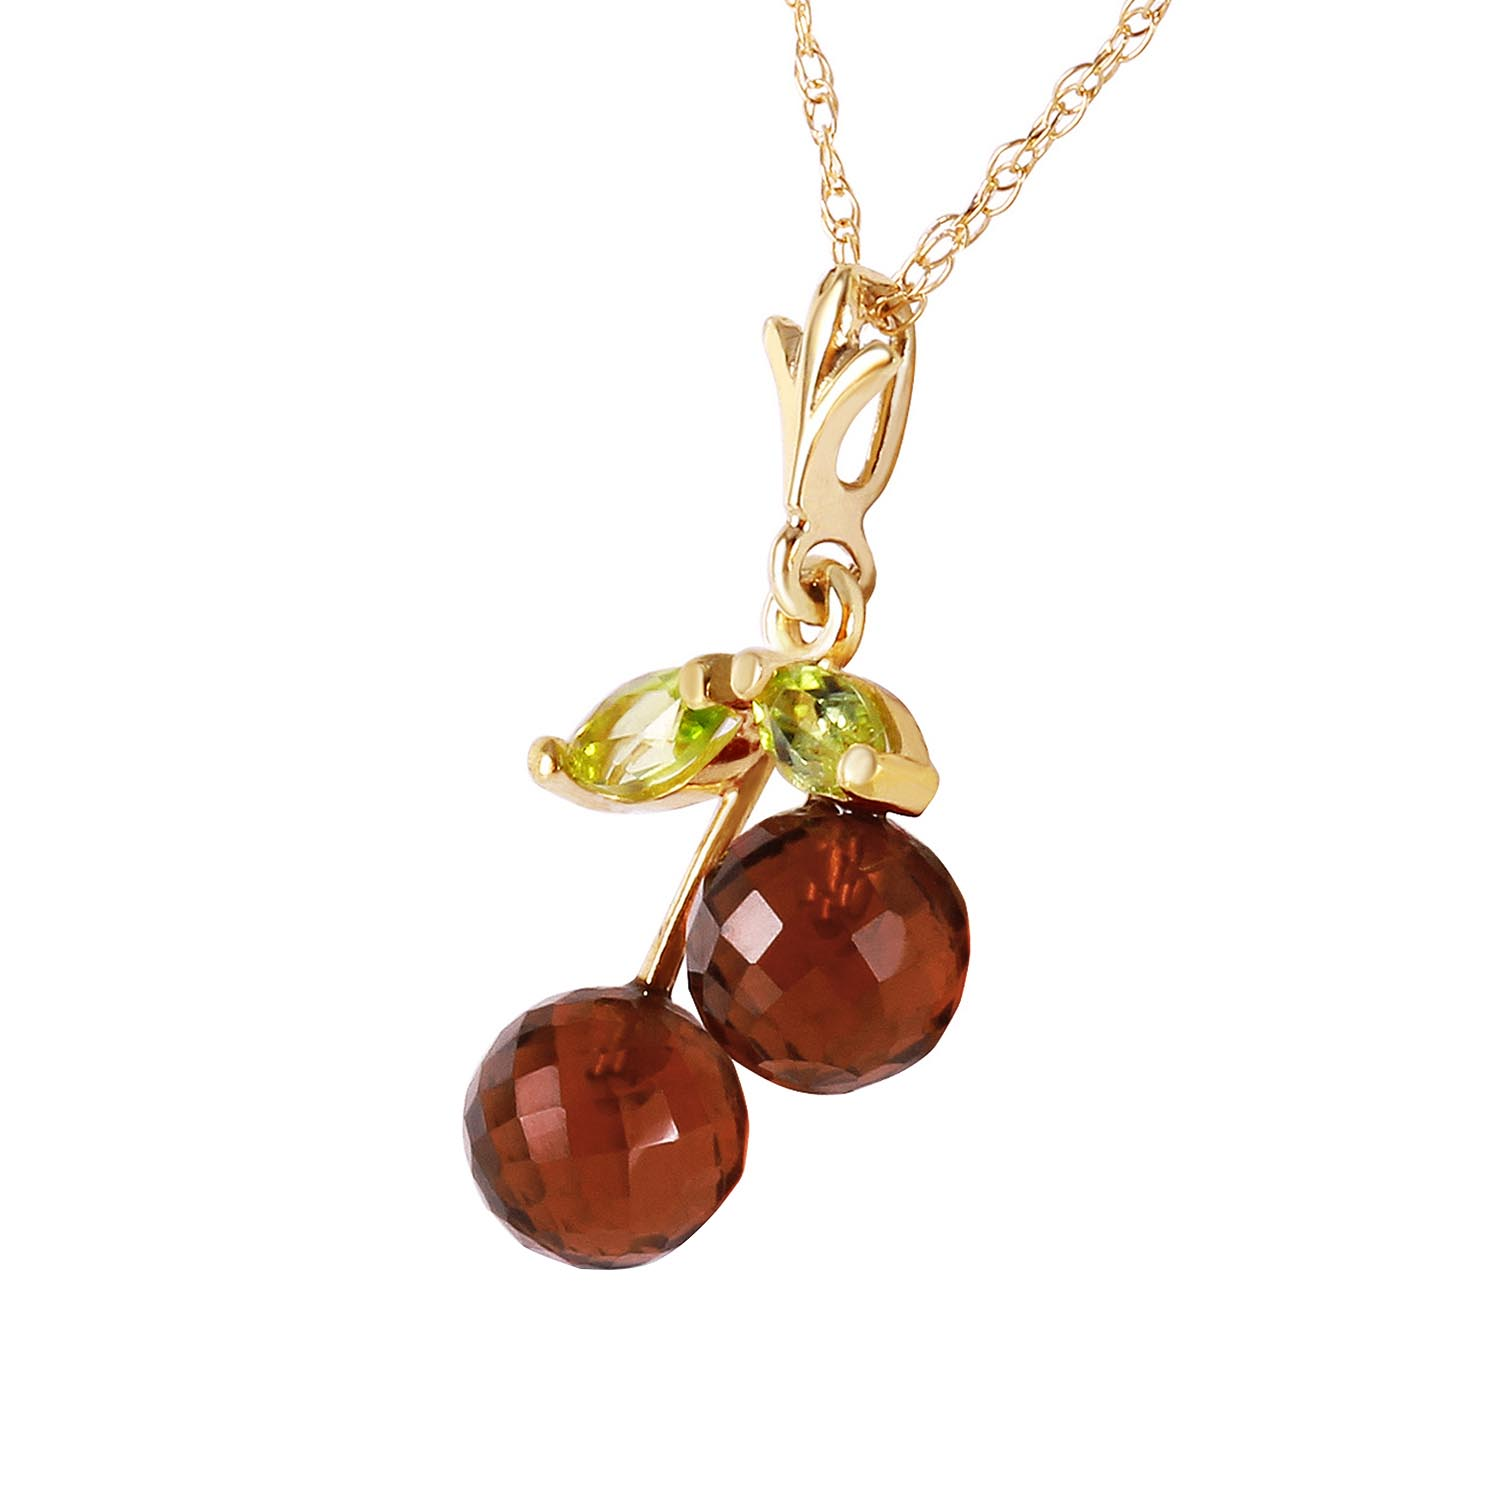 Garnet and Peridot Cherry Drop Pendant Necklace 1.45ctw in 9ct Gold